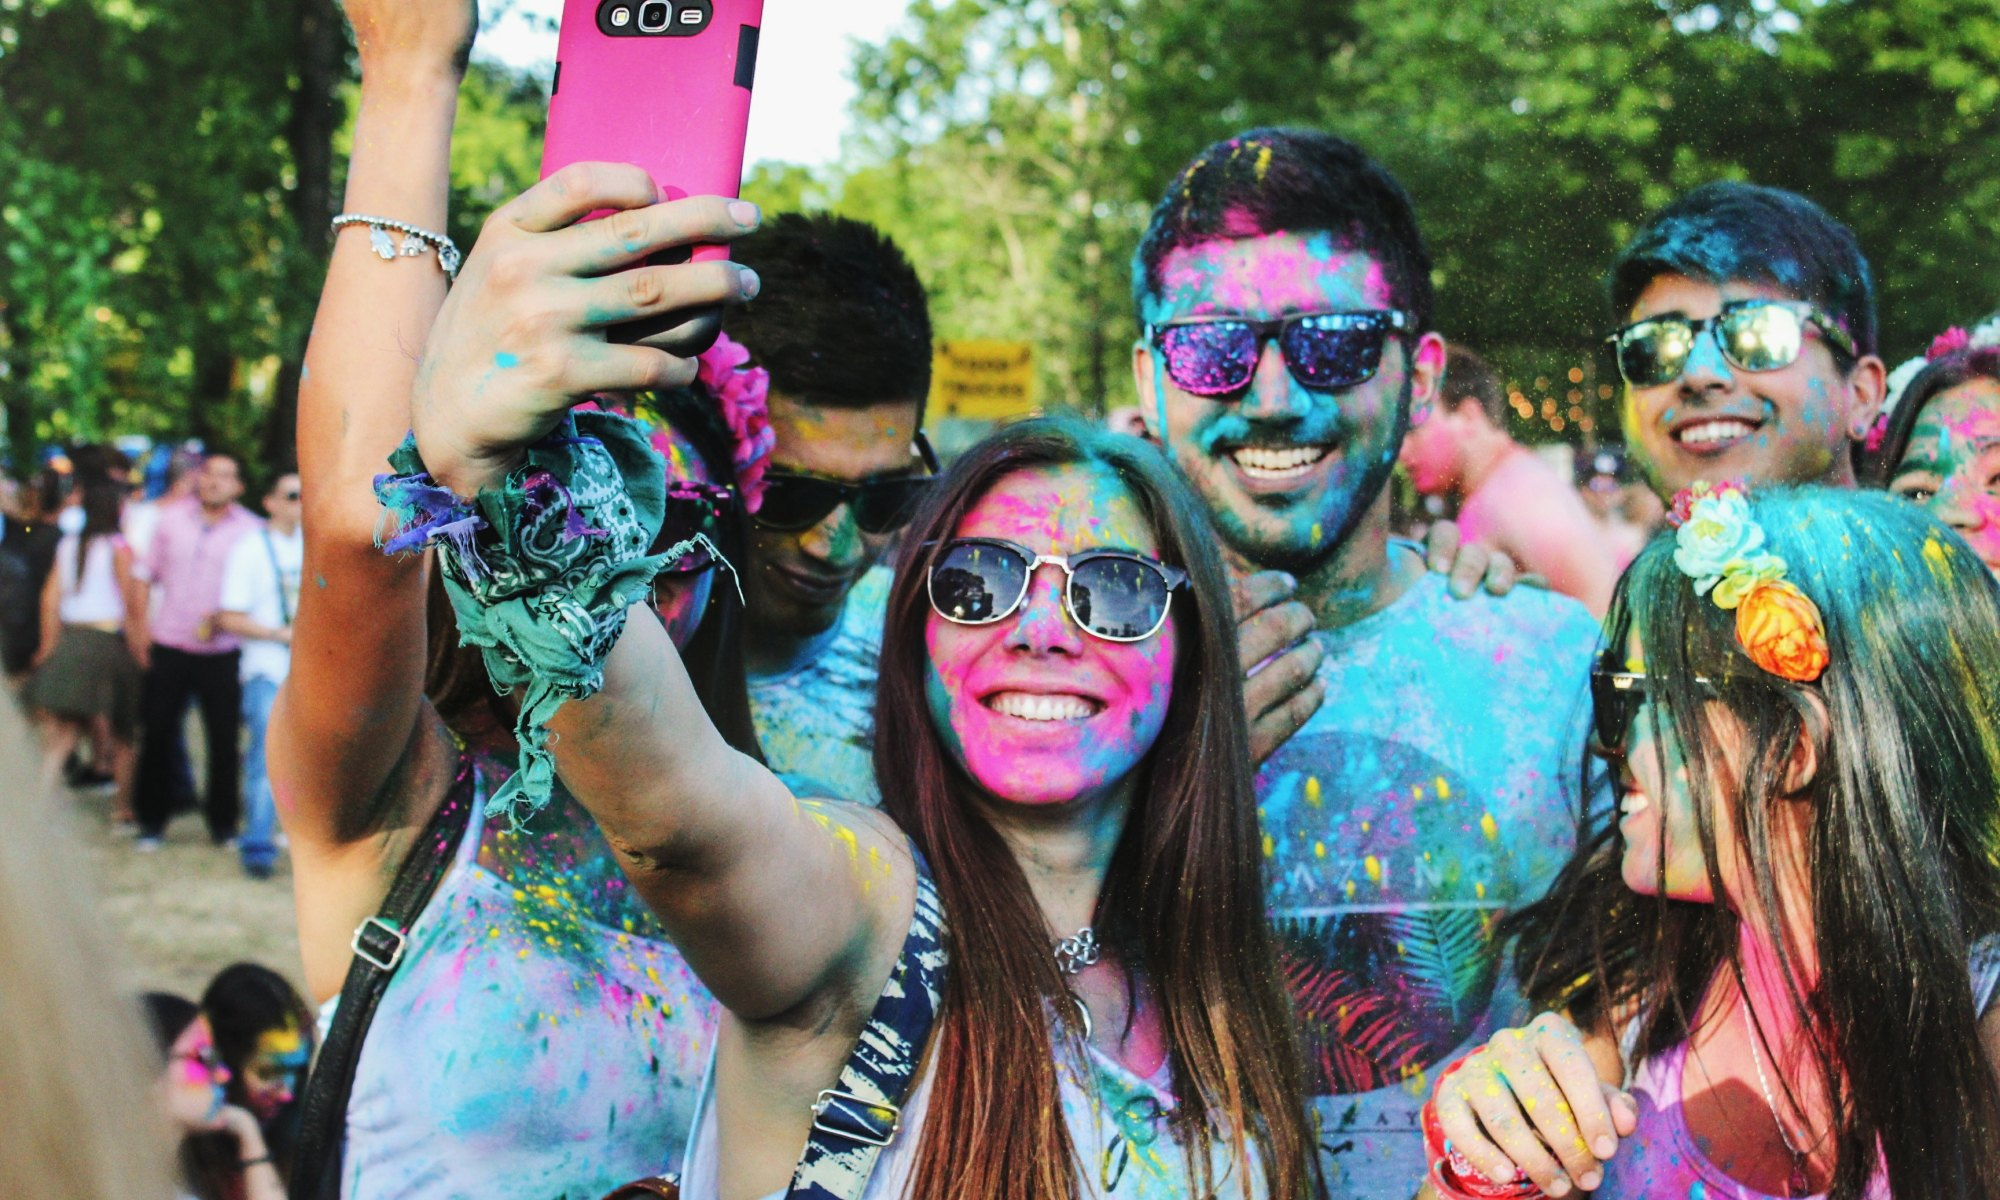 Millennials sprayed in skin paint taking a group picture with a cell phone